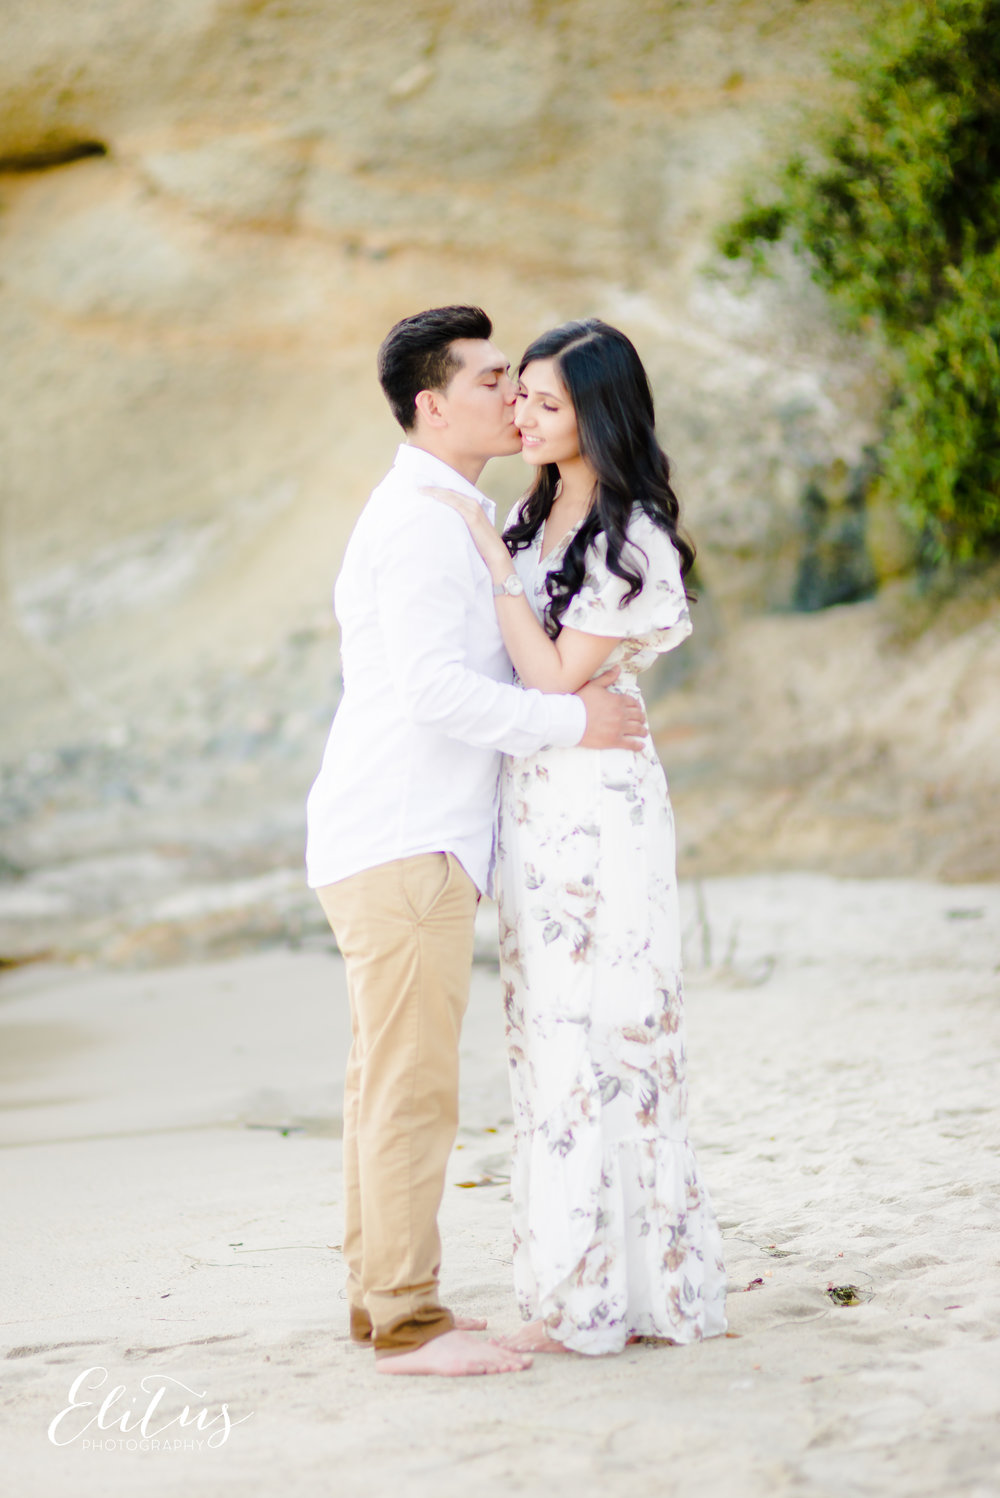 elitus-photograpy-laguna-beach-marisol-benito-engagement (22 of 115).jpg